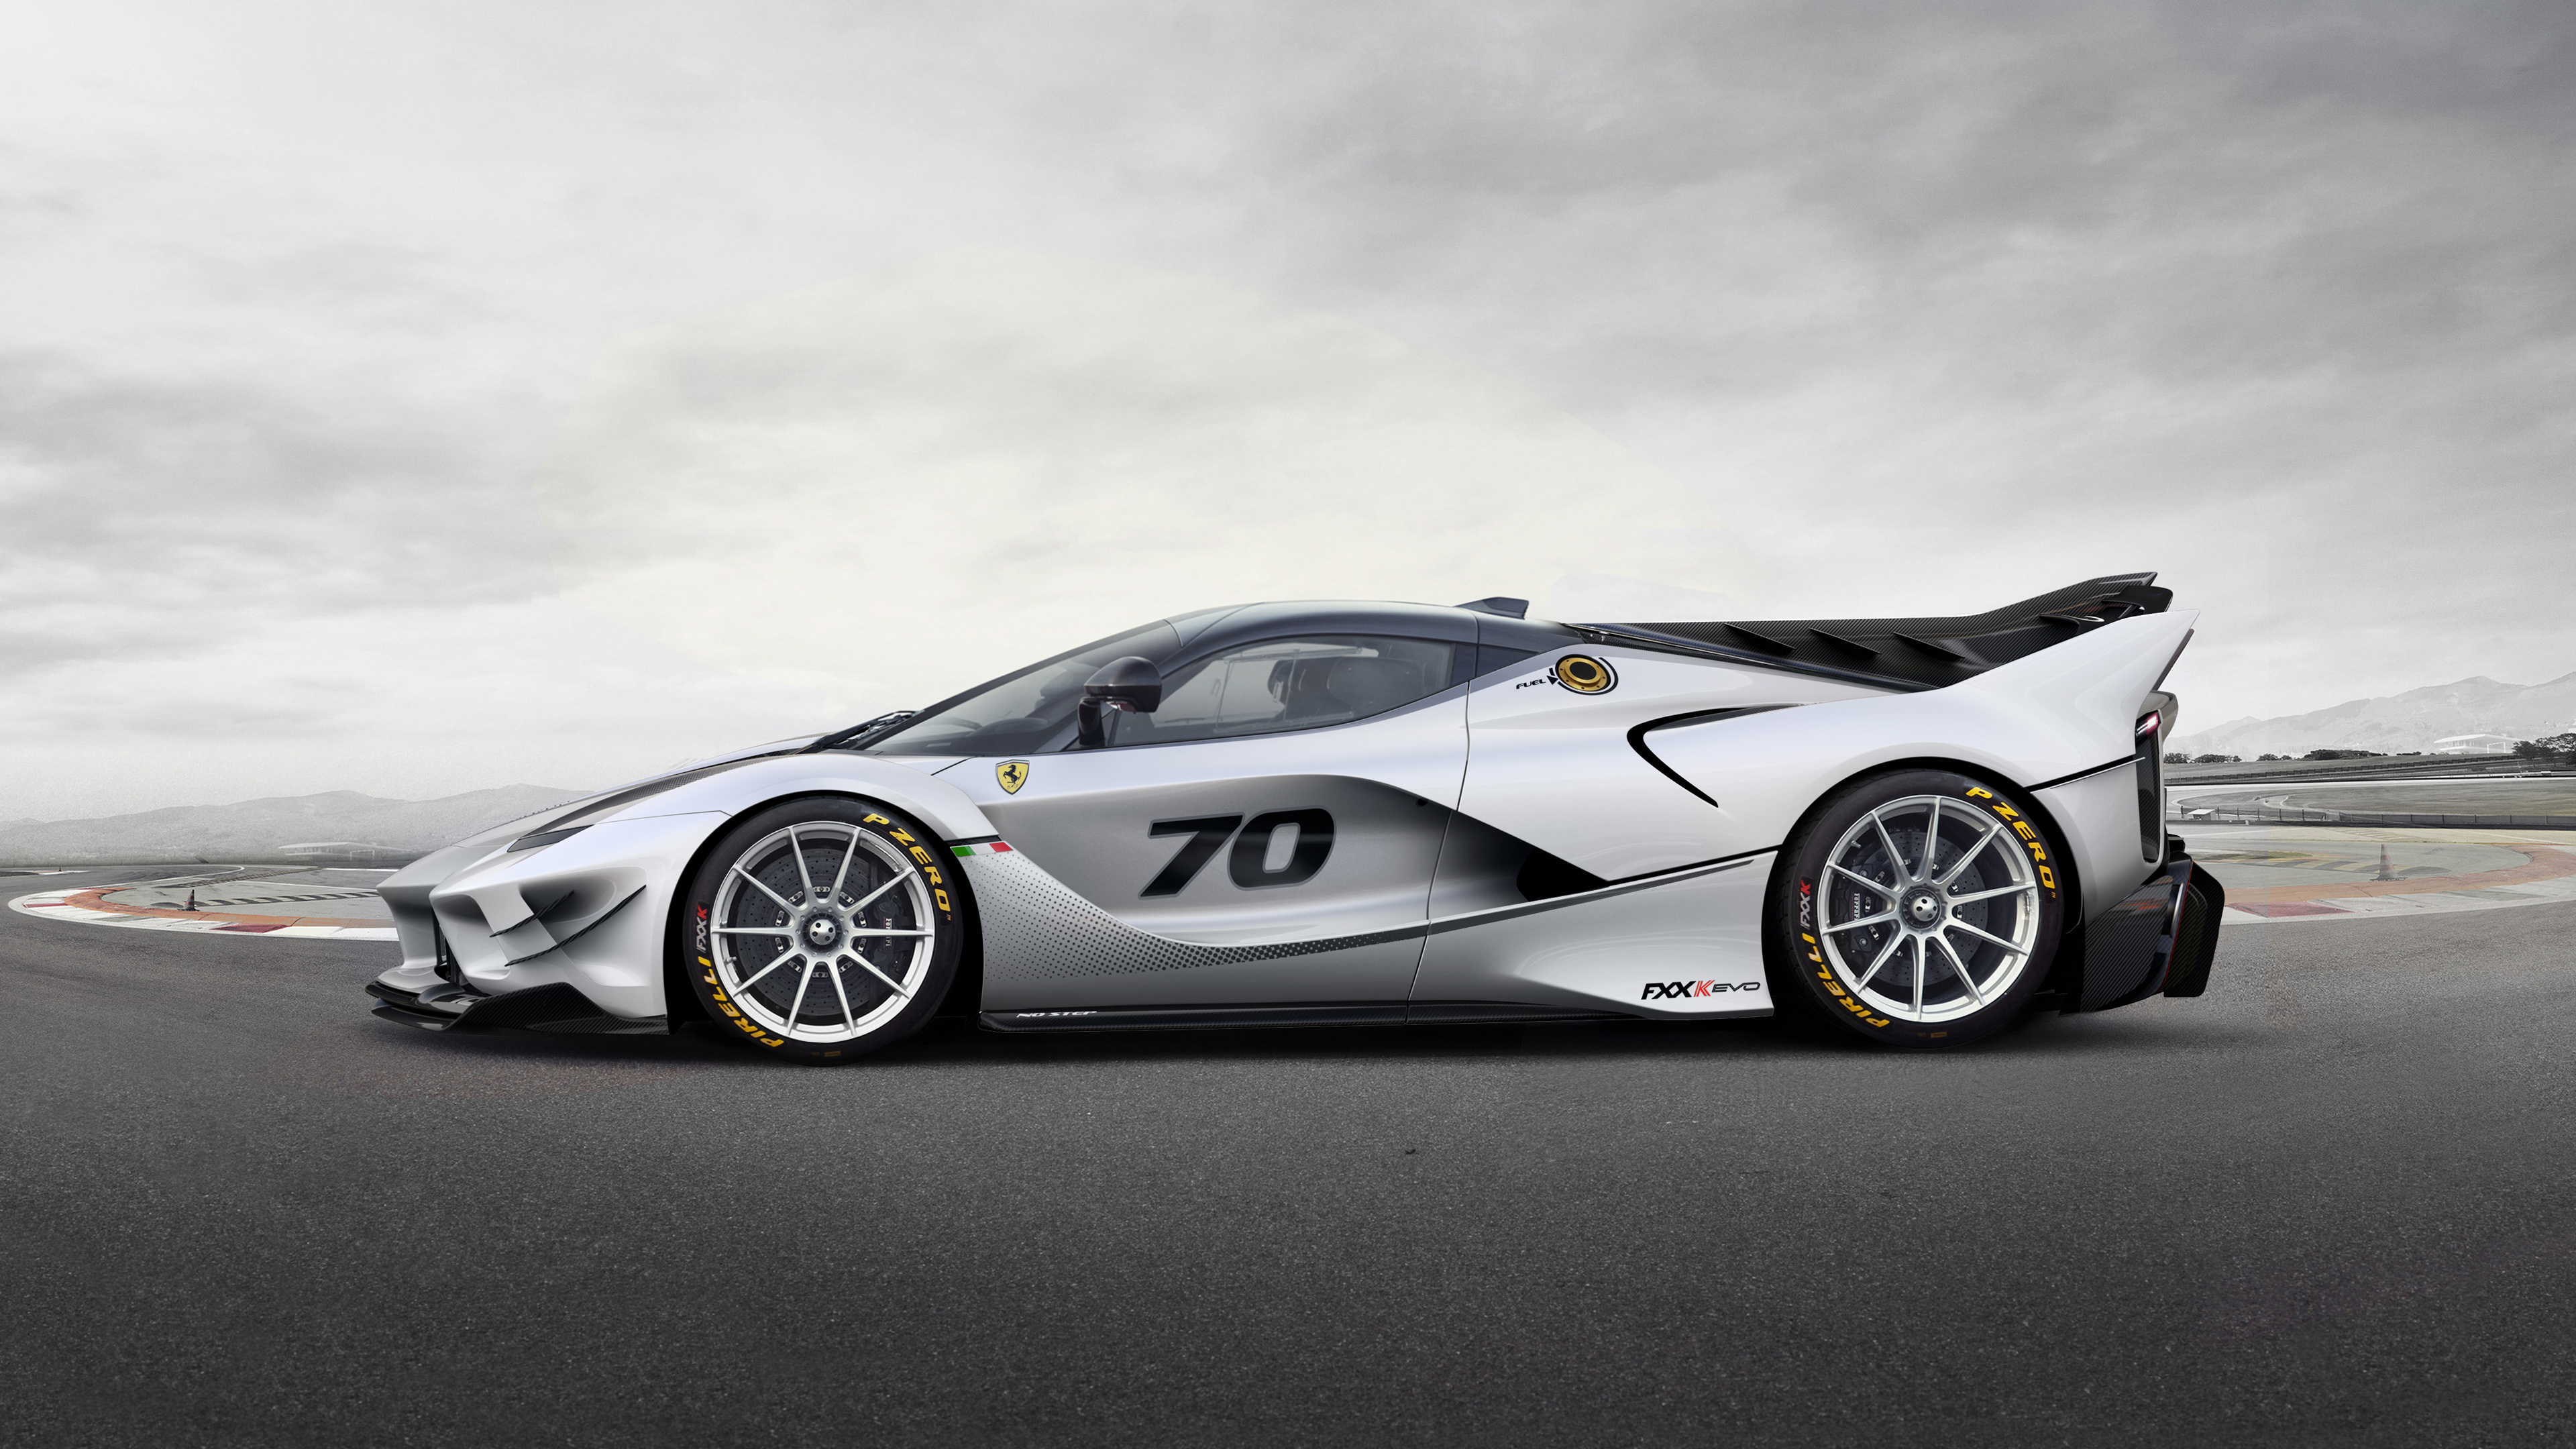 hot wheels laferrari with 2018 Ferrari Fxx K Evo 4k 5 Wallpapers on Pink And Black Cars 4 Desktop Wallpaper moreover Liberty Walk Ferrari 458 Spider Looks Hot On Candy Red Wheels 90603 likewise Collectionhdwn Hot Wheels Mclaren F1 further 2016 ferrari 488 gts novitec rosso Wallpapers furthermore 2017 Bugatti Chiron Revealed 39833.